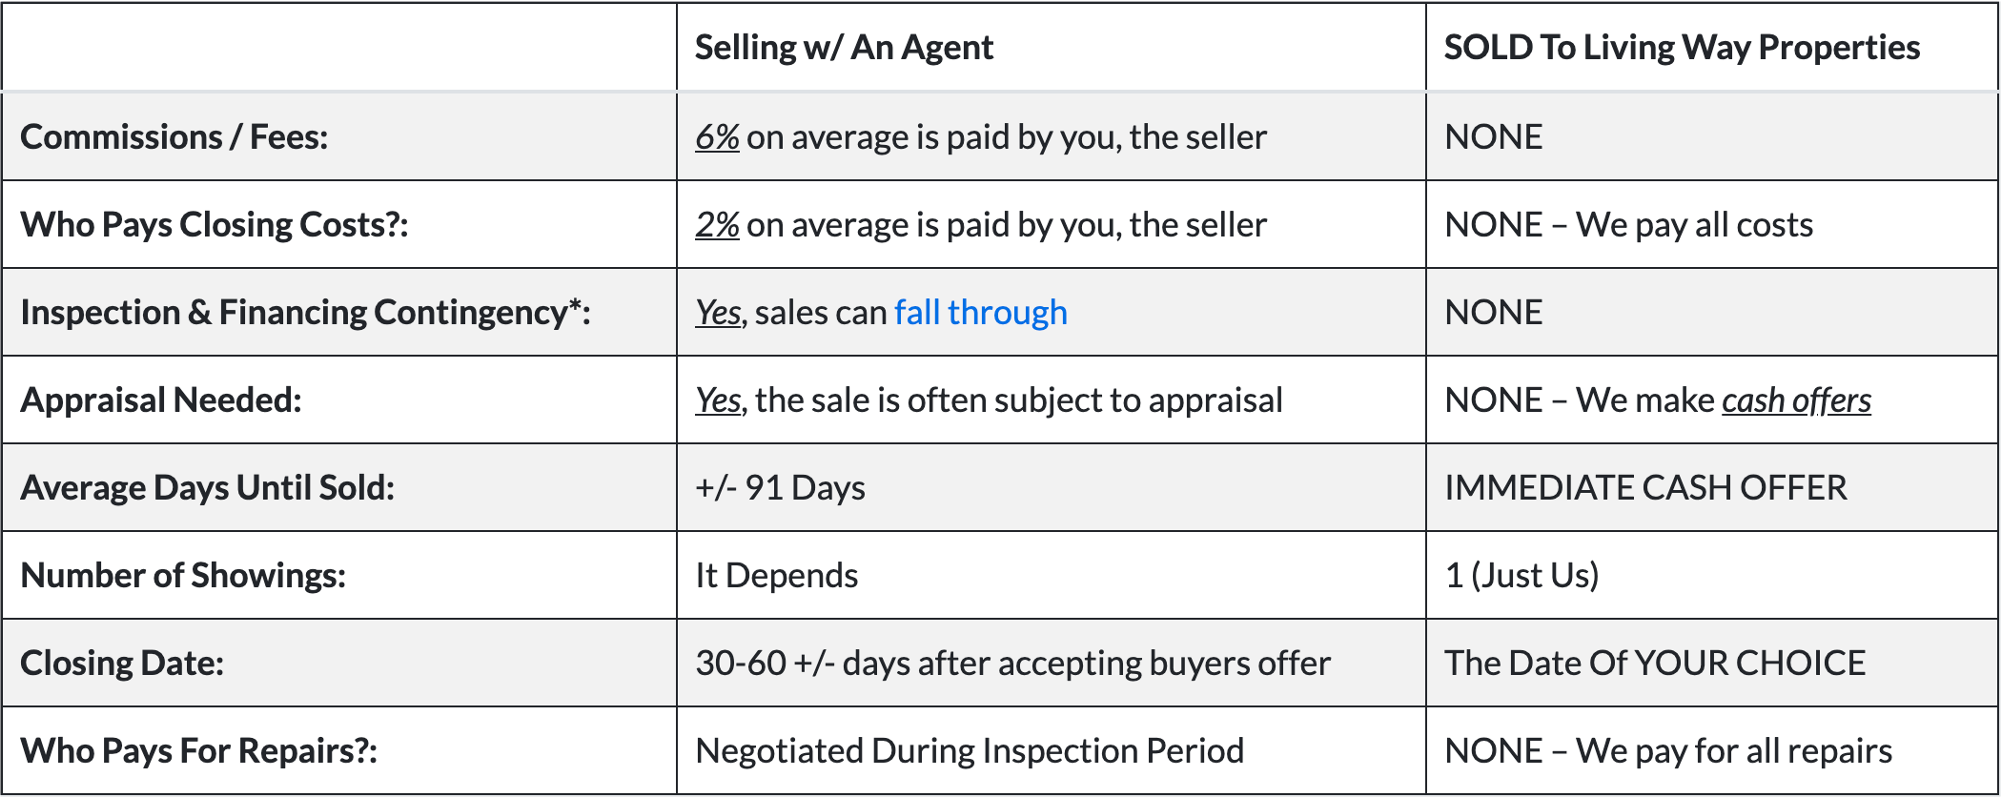 https://livingwayproperties.com/wp-content/uploads/2021/05/selling-with-living-way-properties-vs-local-texas-agent.png